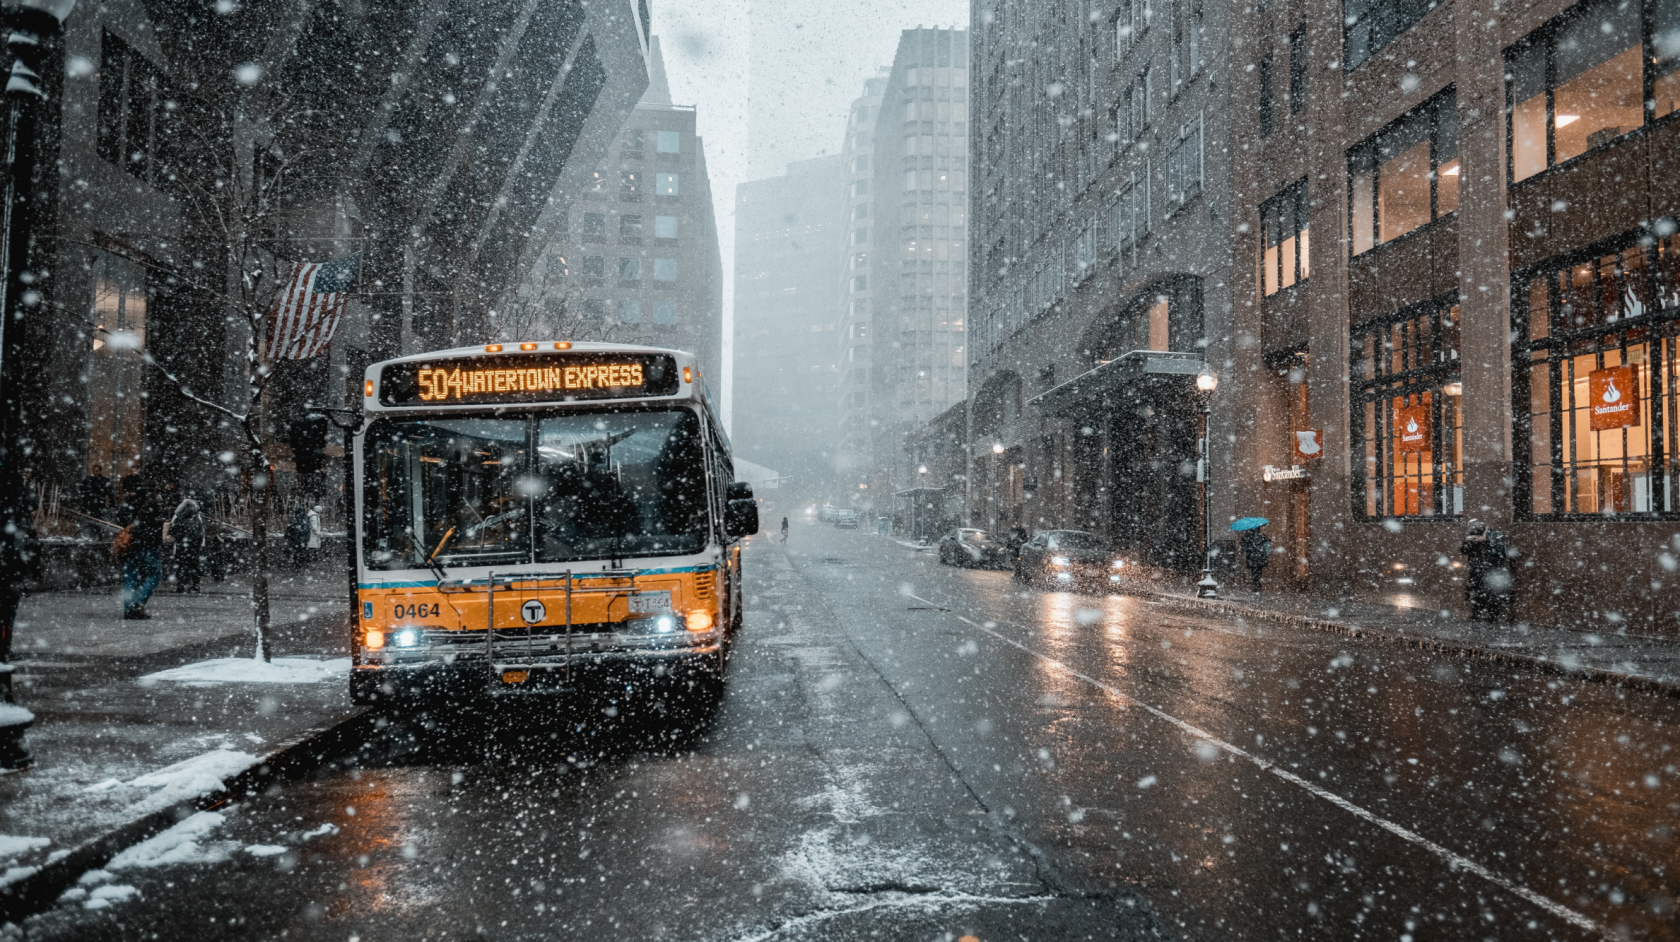 Boston bus in snowy weather